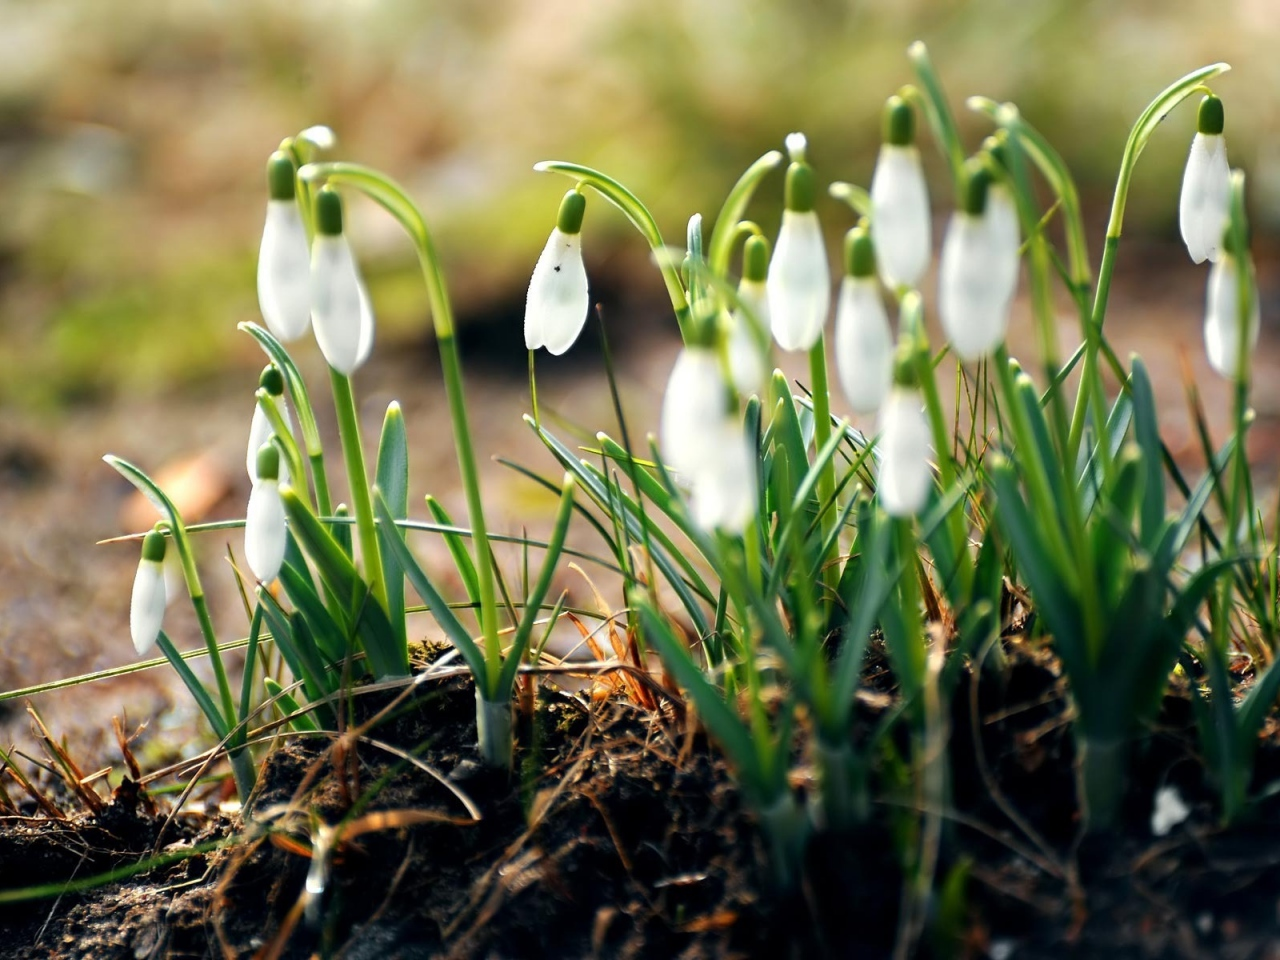 snowdrops-flowers-primroses-spring-leaves-earth